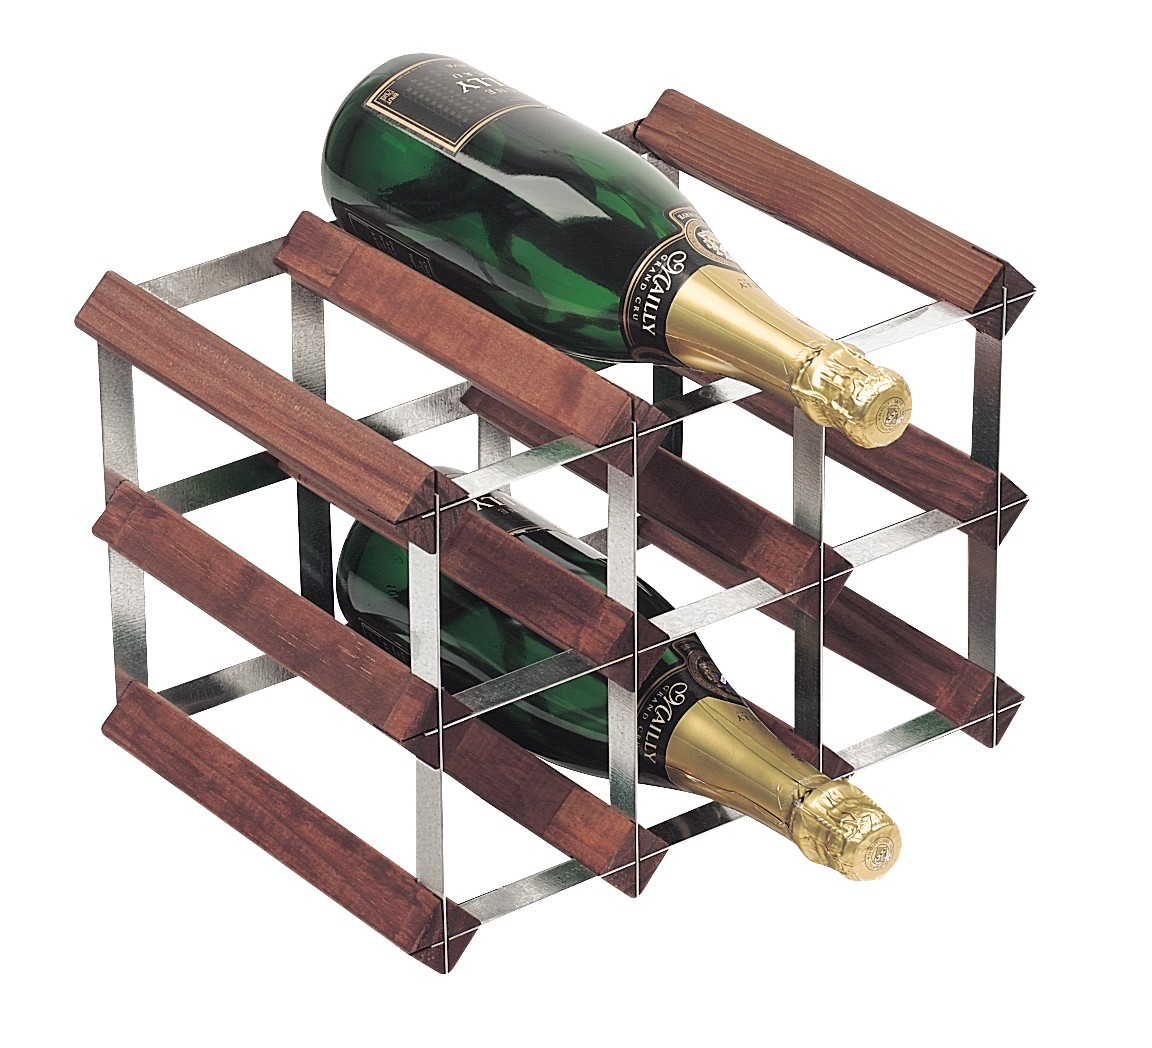 Bottle traditional wooden wine rack